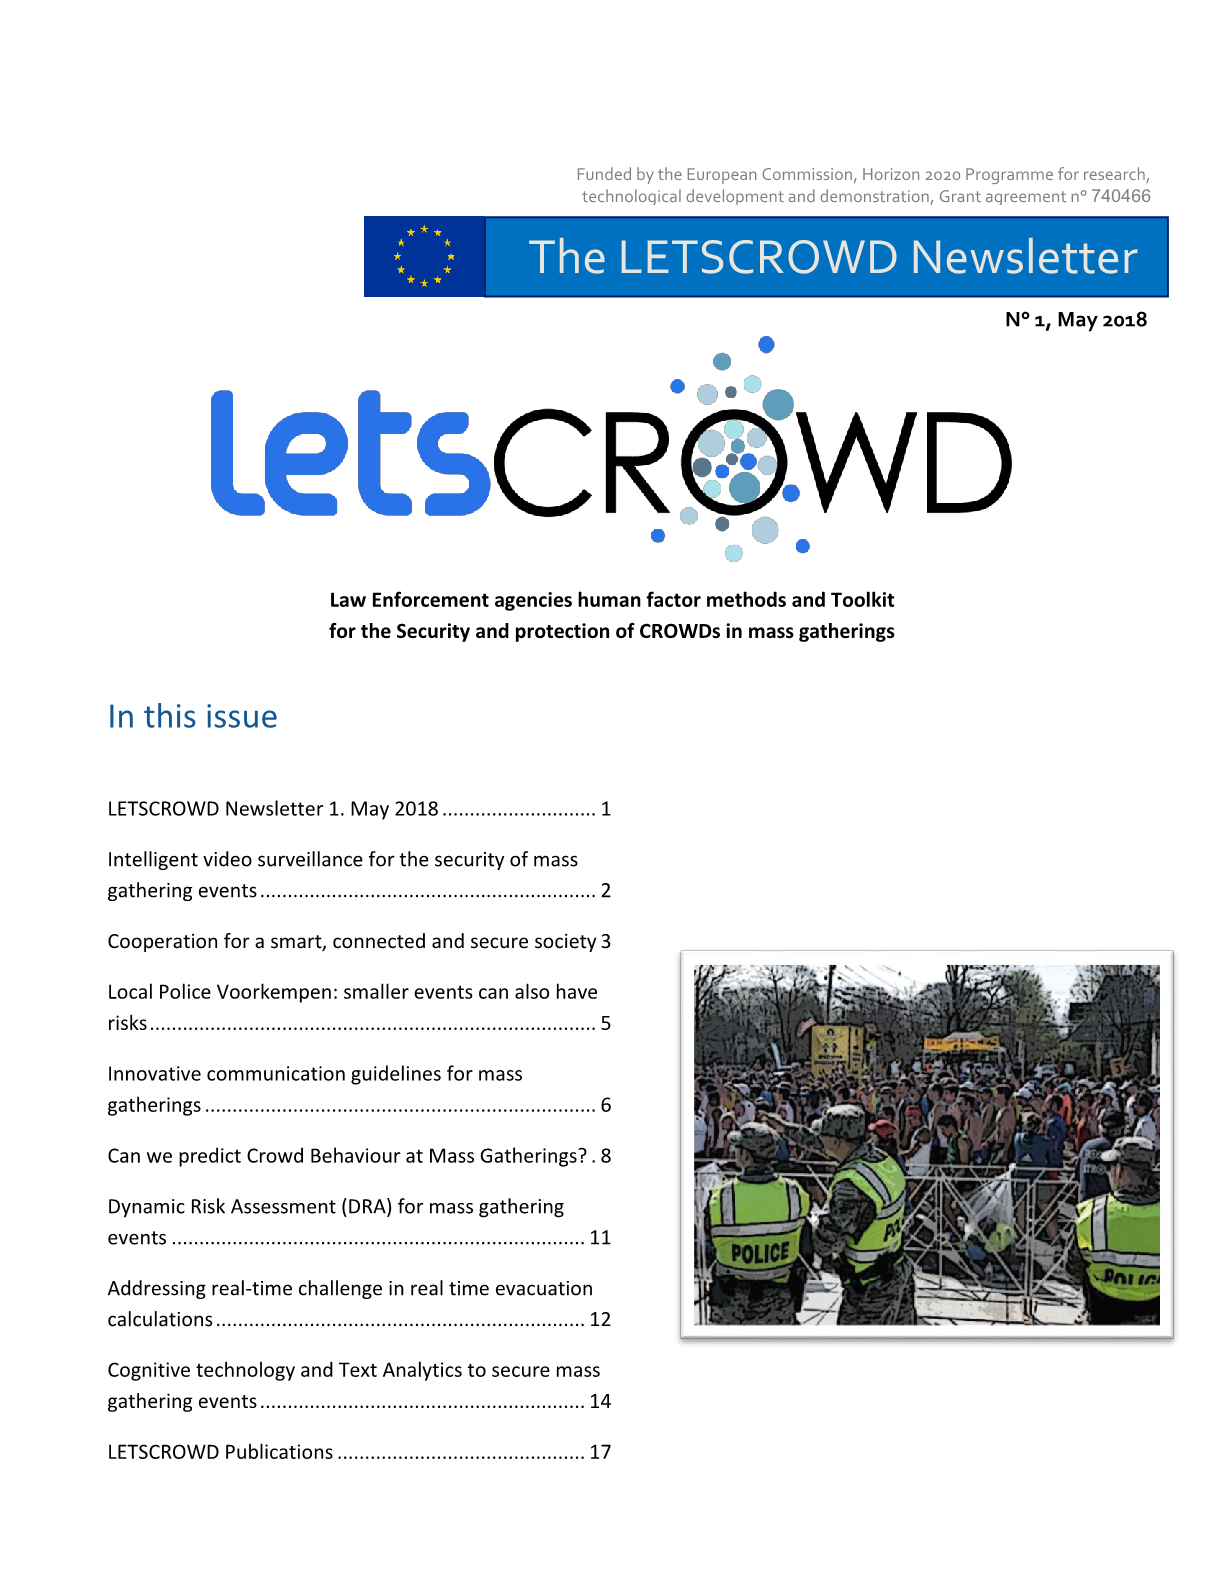 LETSCROWD Newsletter Issue 01, May 2018